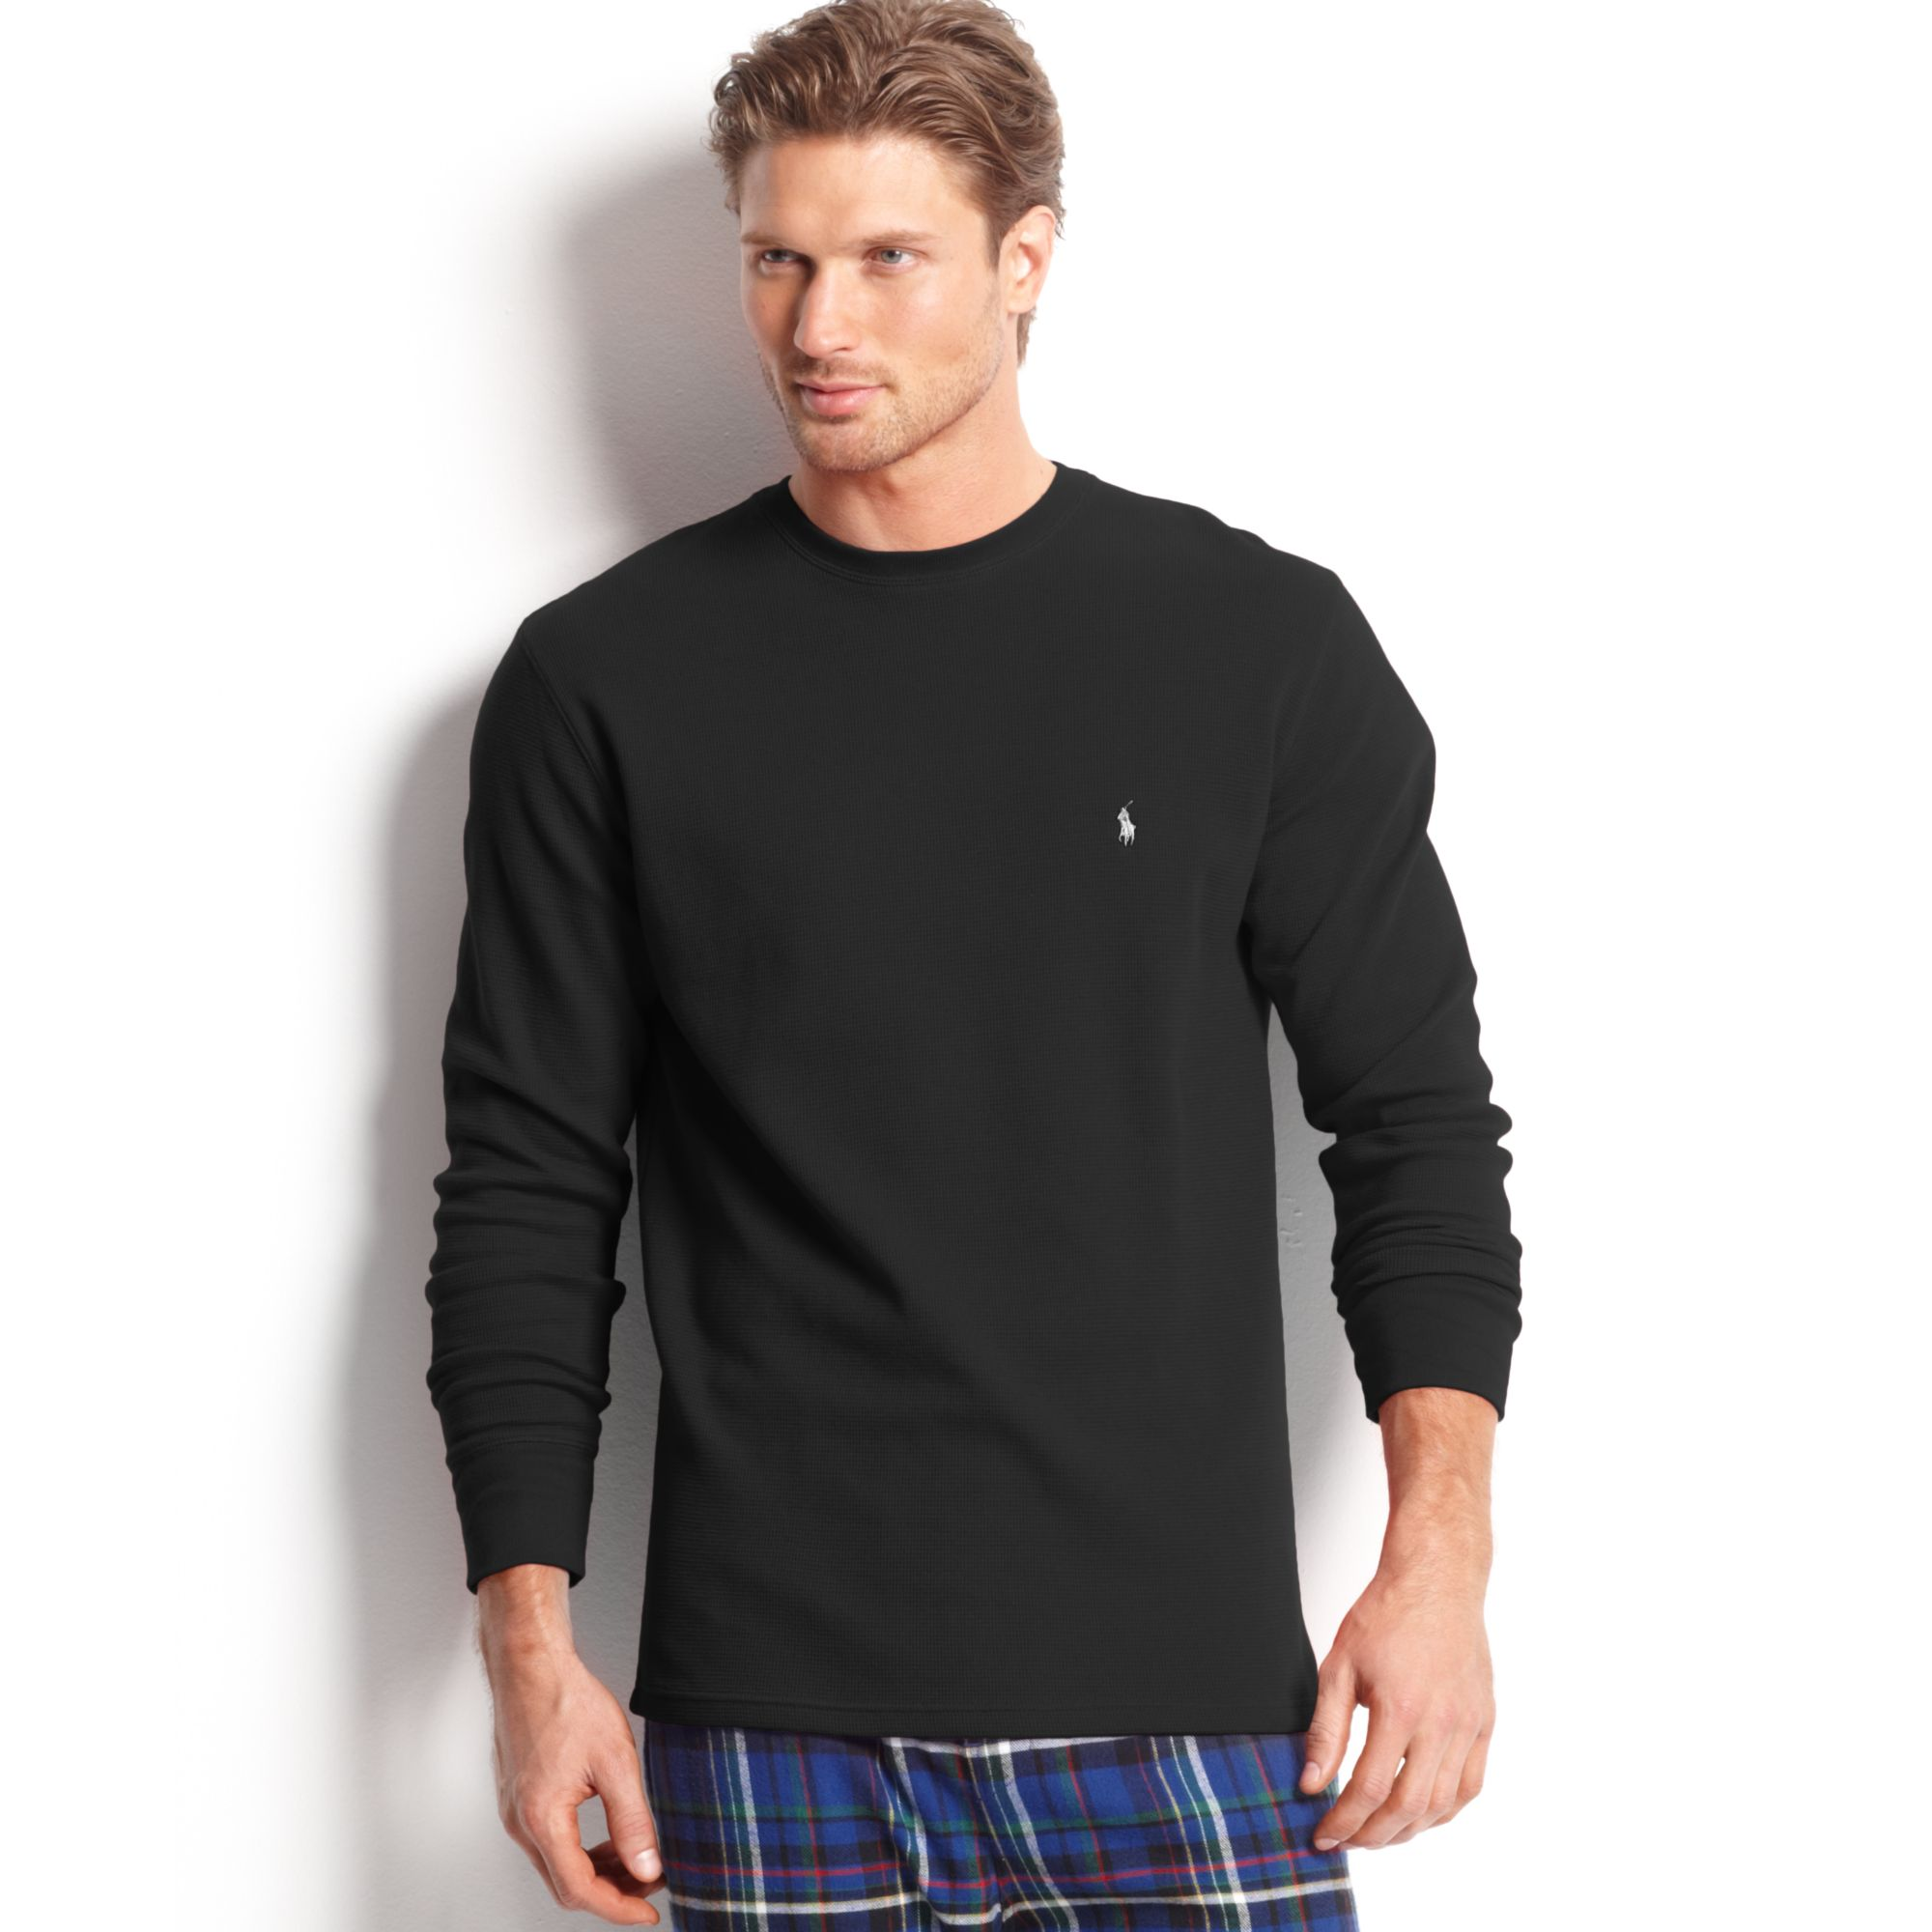 ralph lauren long sleeve crew neck waffleknit thermal tshirt in black. Black Bedroom Furniture Sets. Home Design Ideas